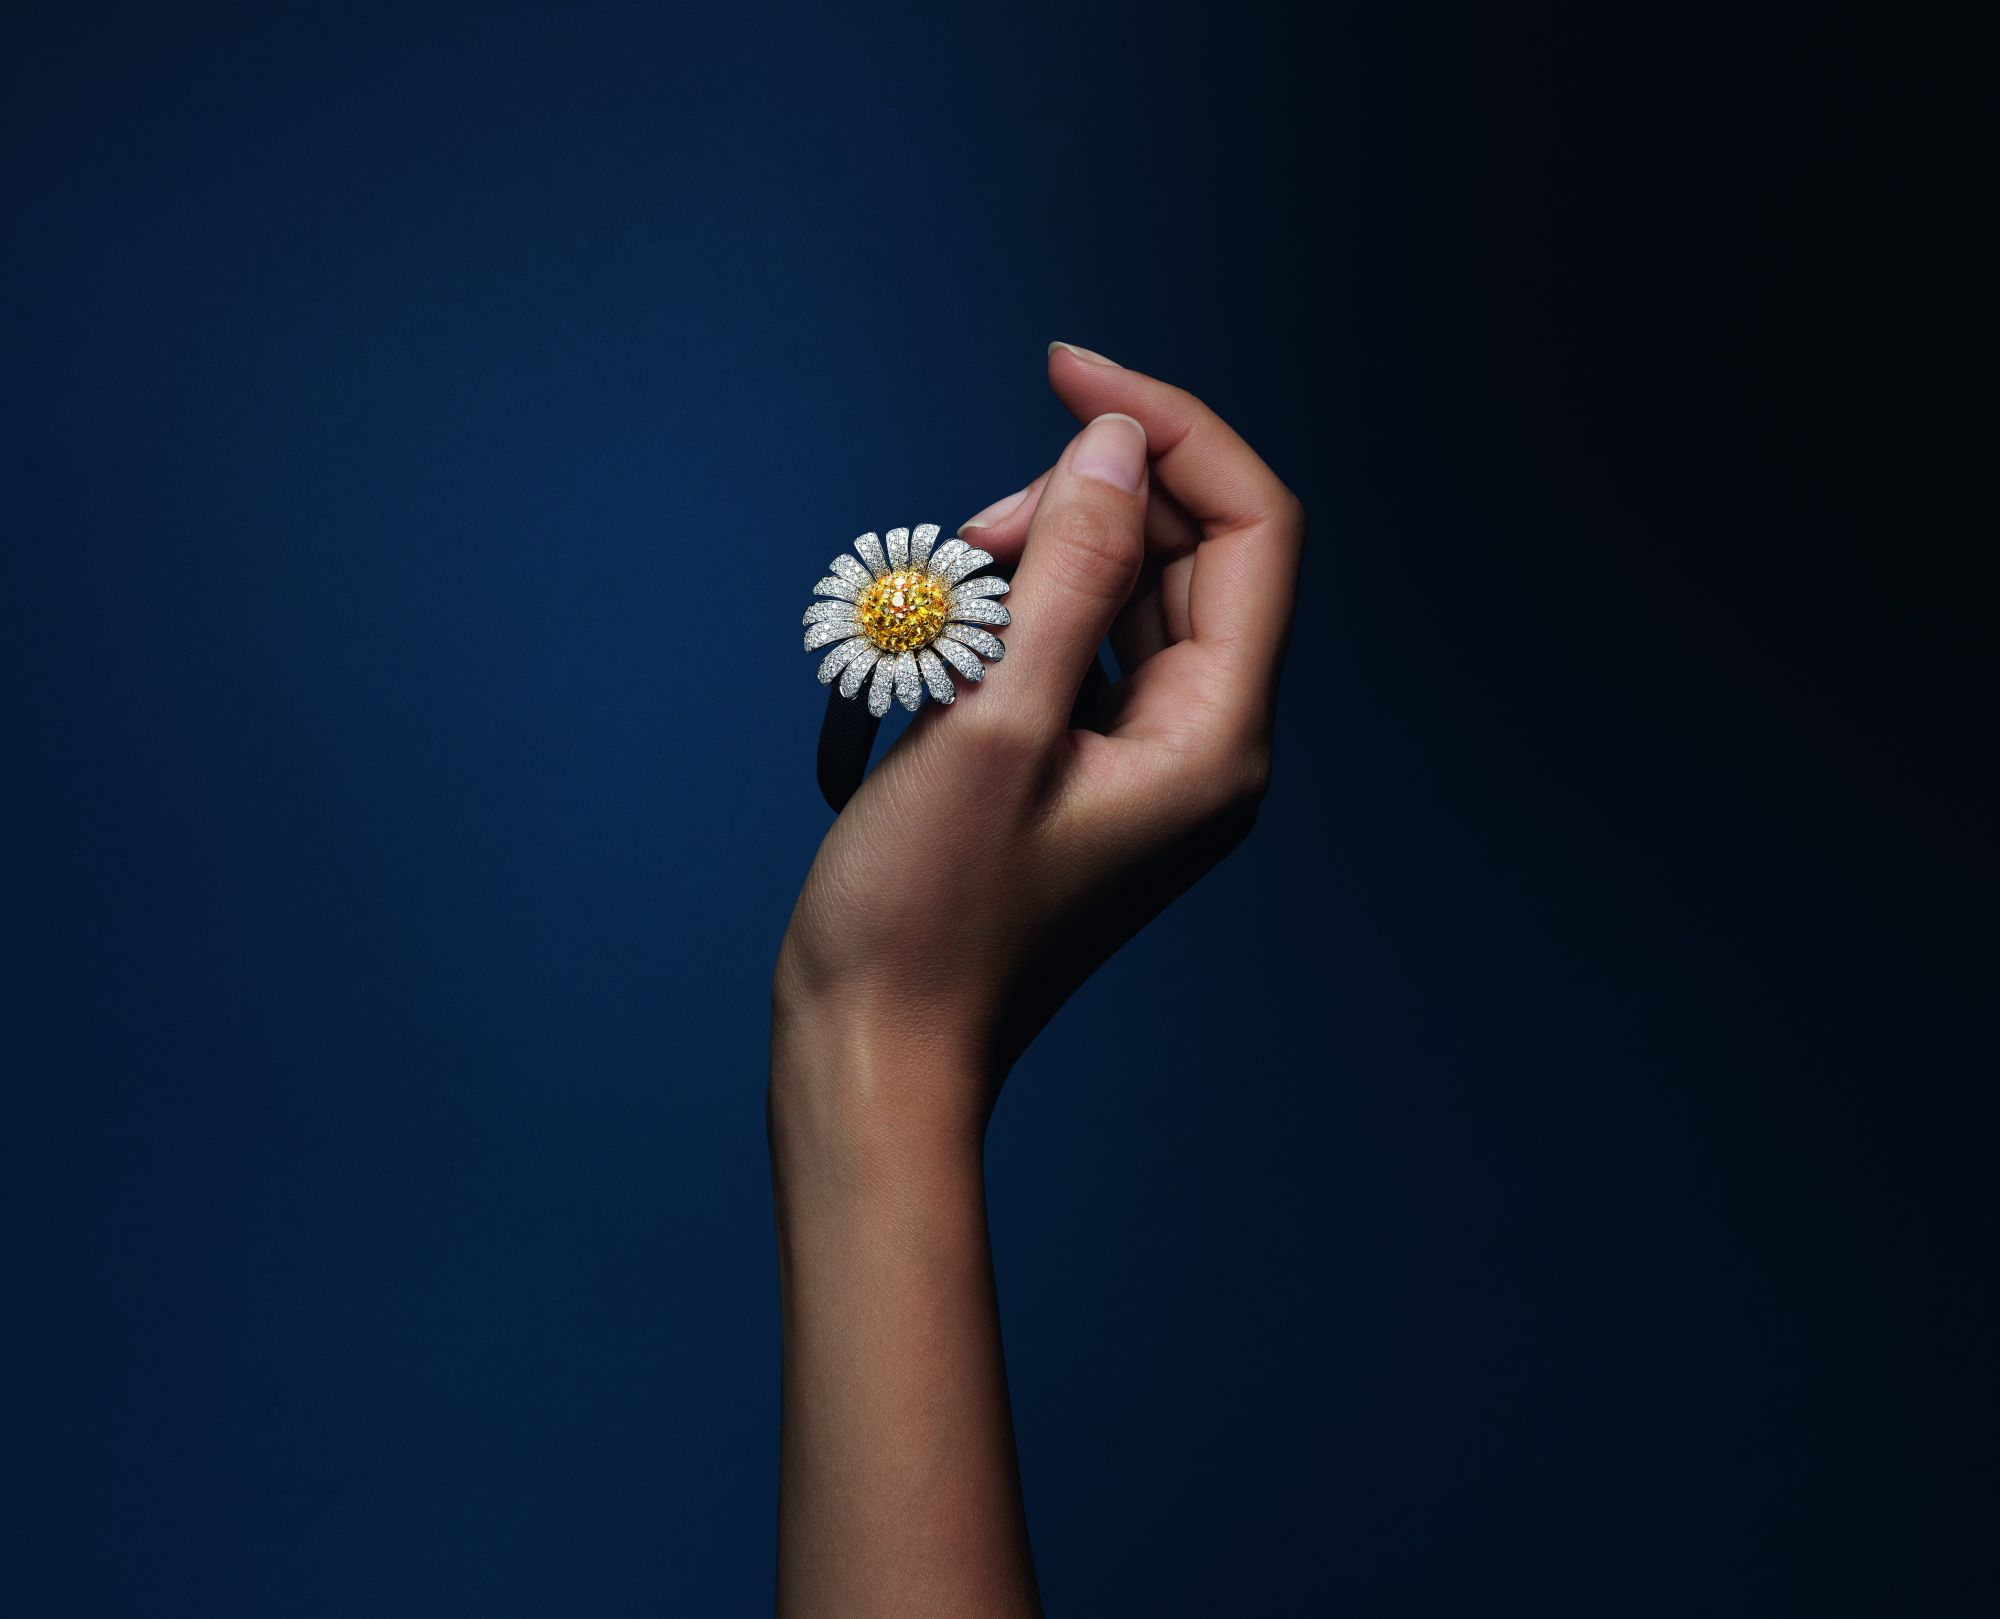 Van Cleef & Arpels Pays Hommage To The Delicate Beauty Of Flowers